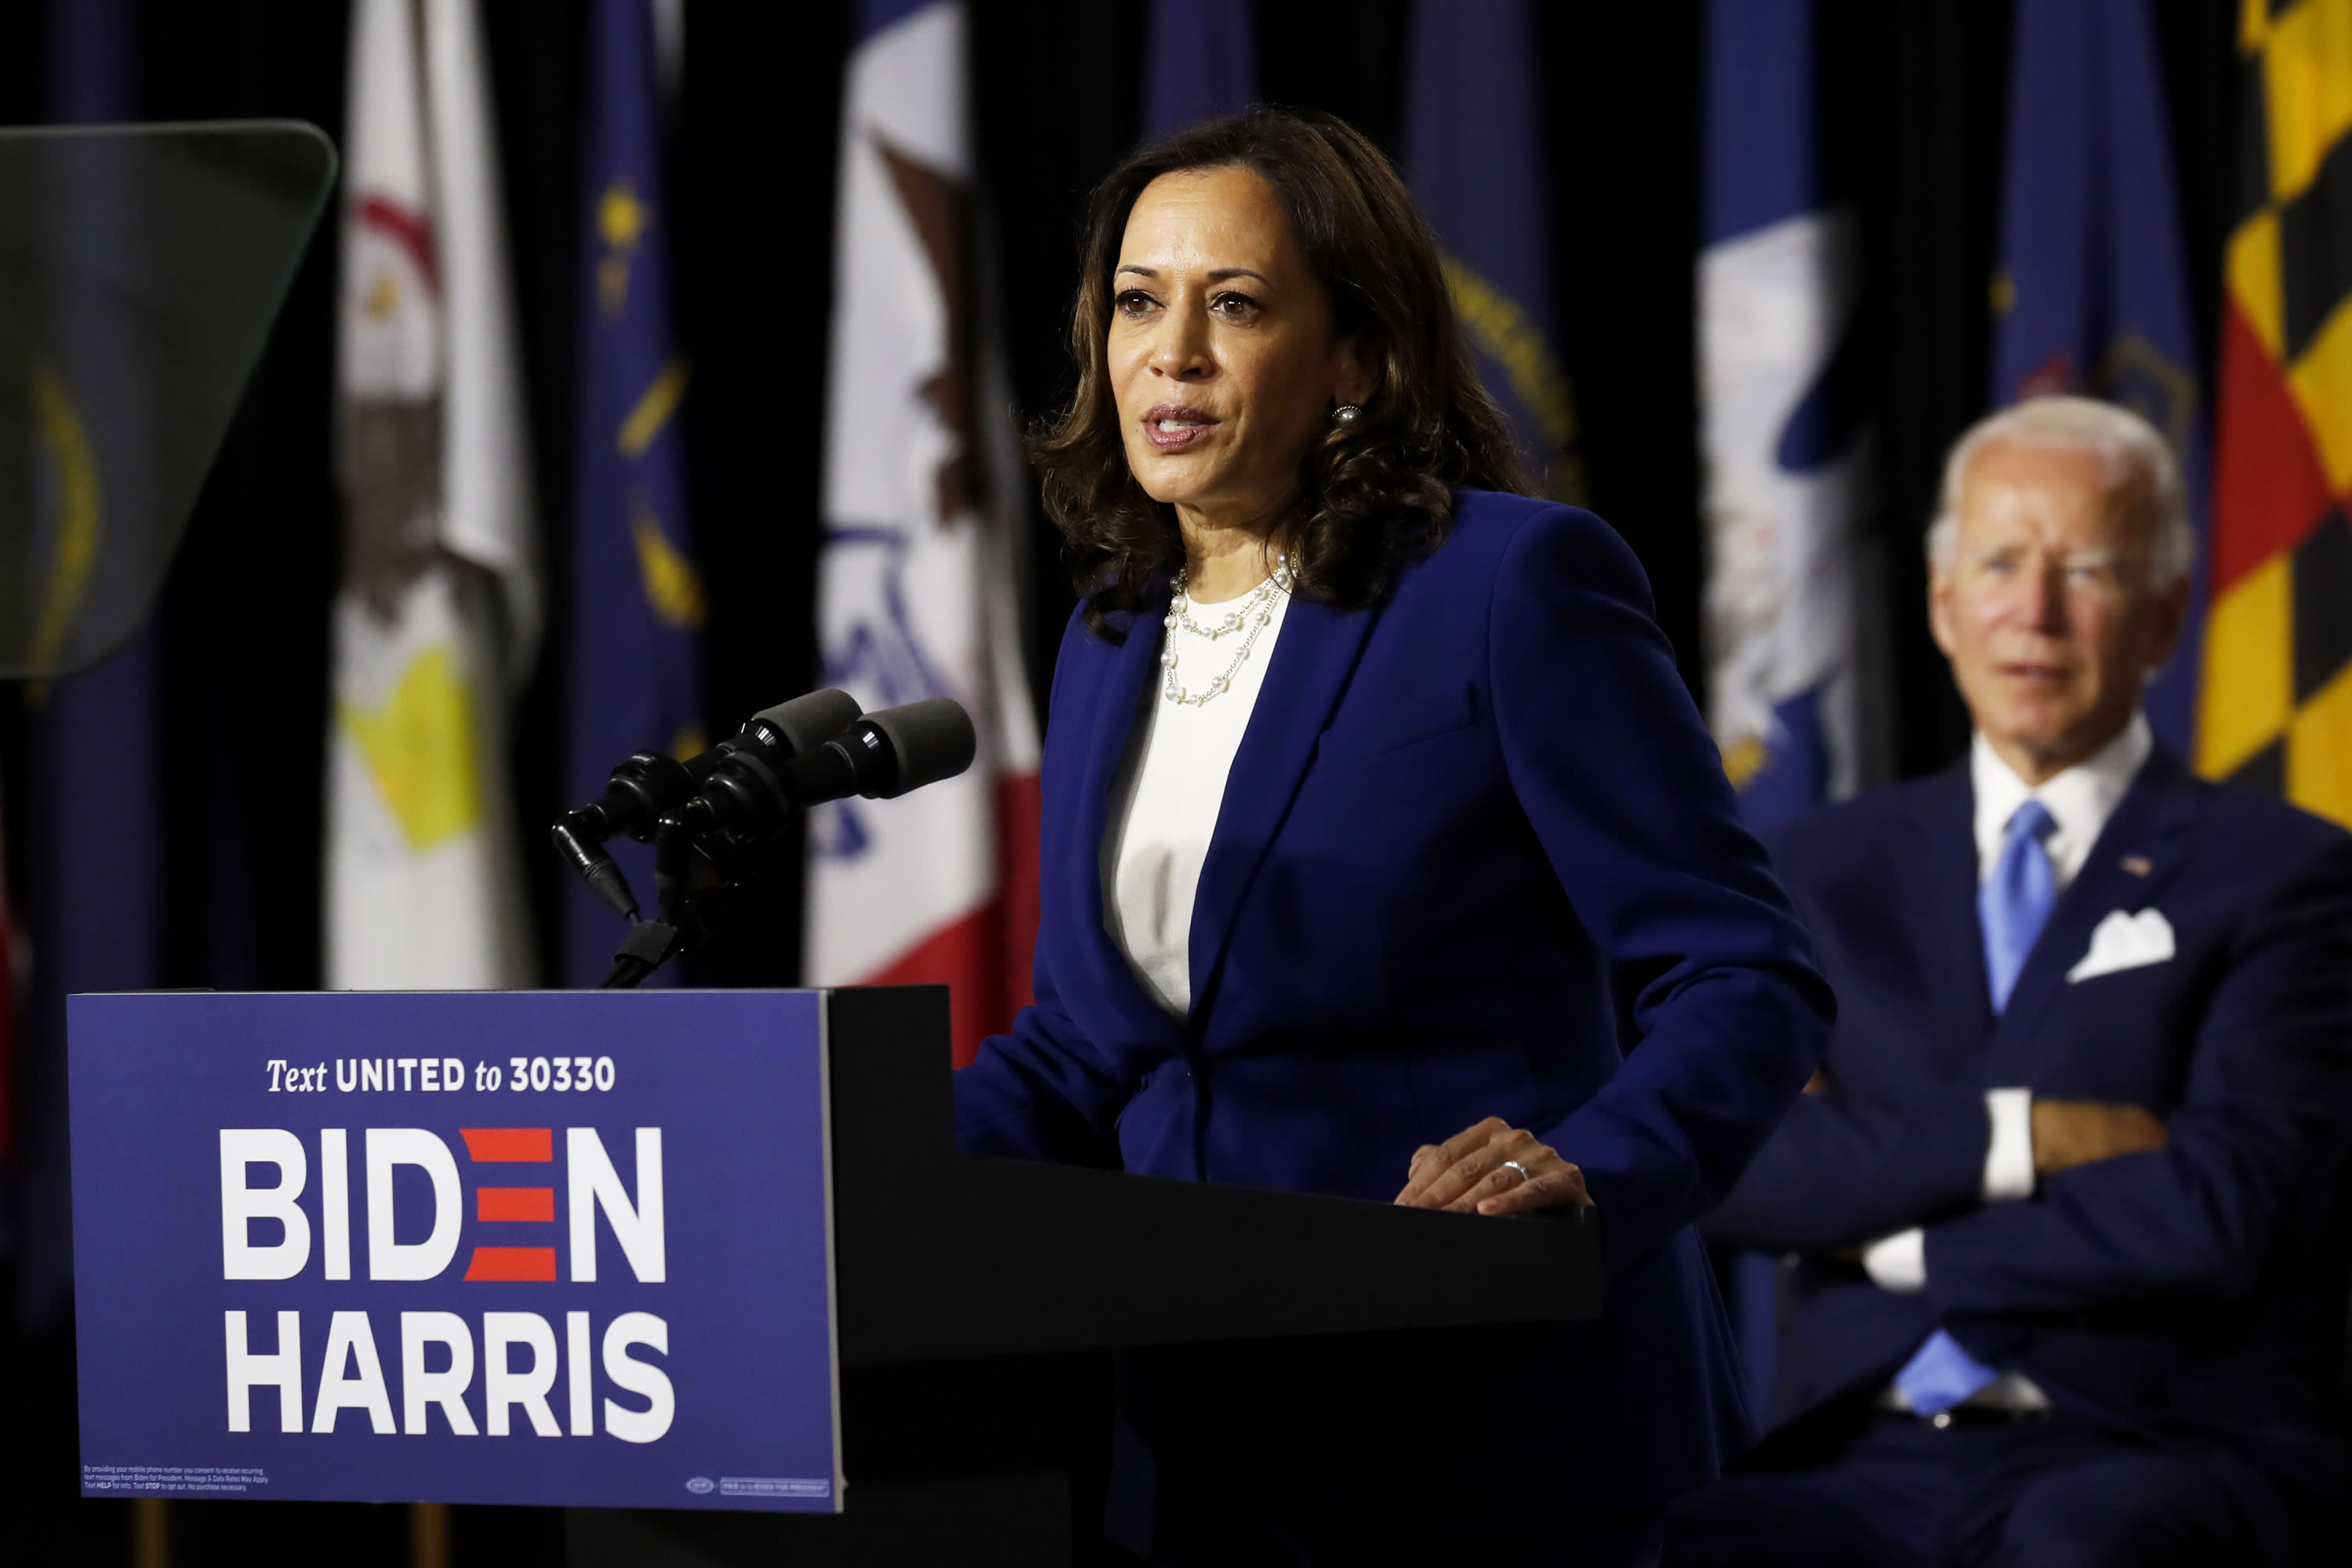 Kamala Harris blames Trump for severity of U.S. coronavirus outbreak: He failed to take it 'seriously from the start' – CNBC